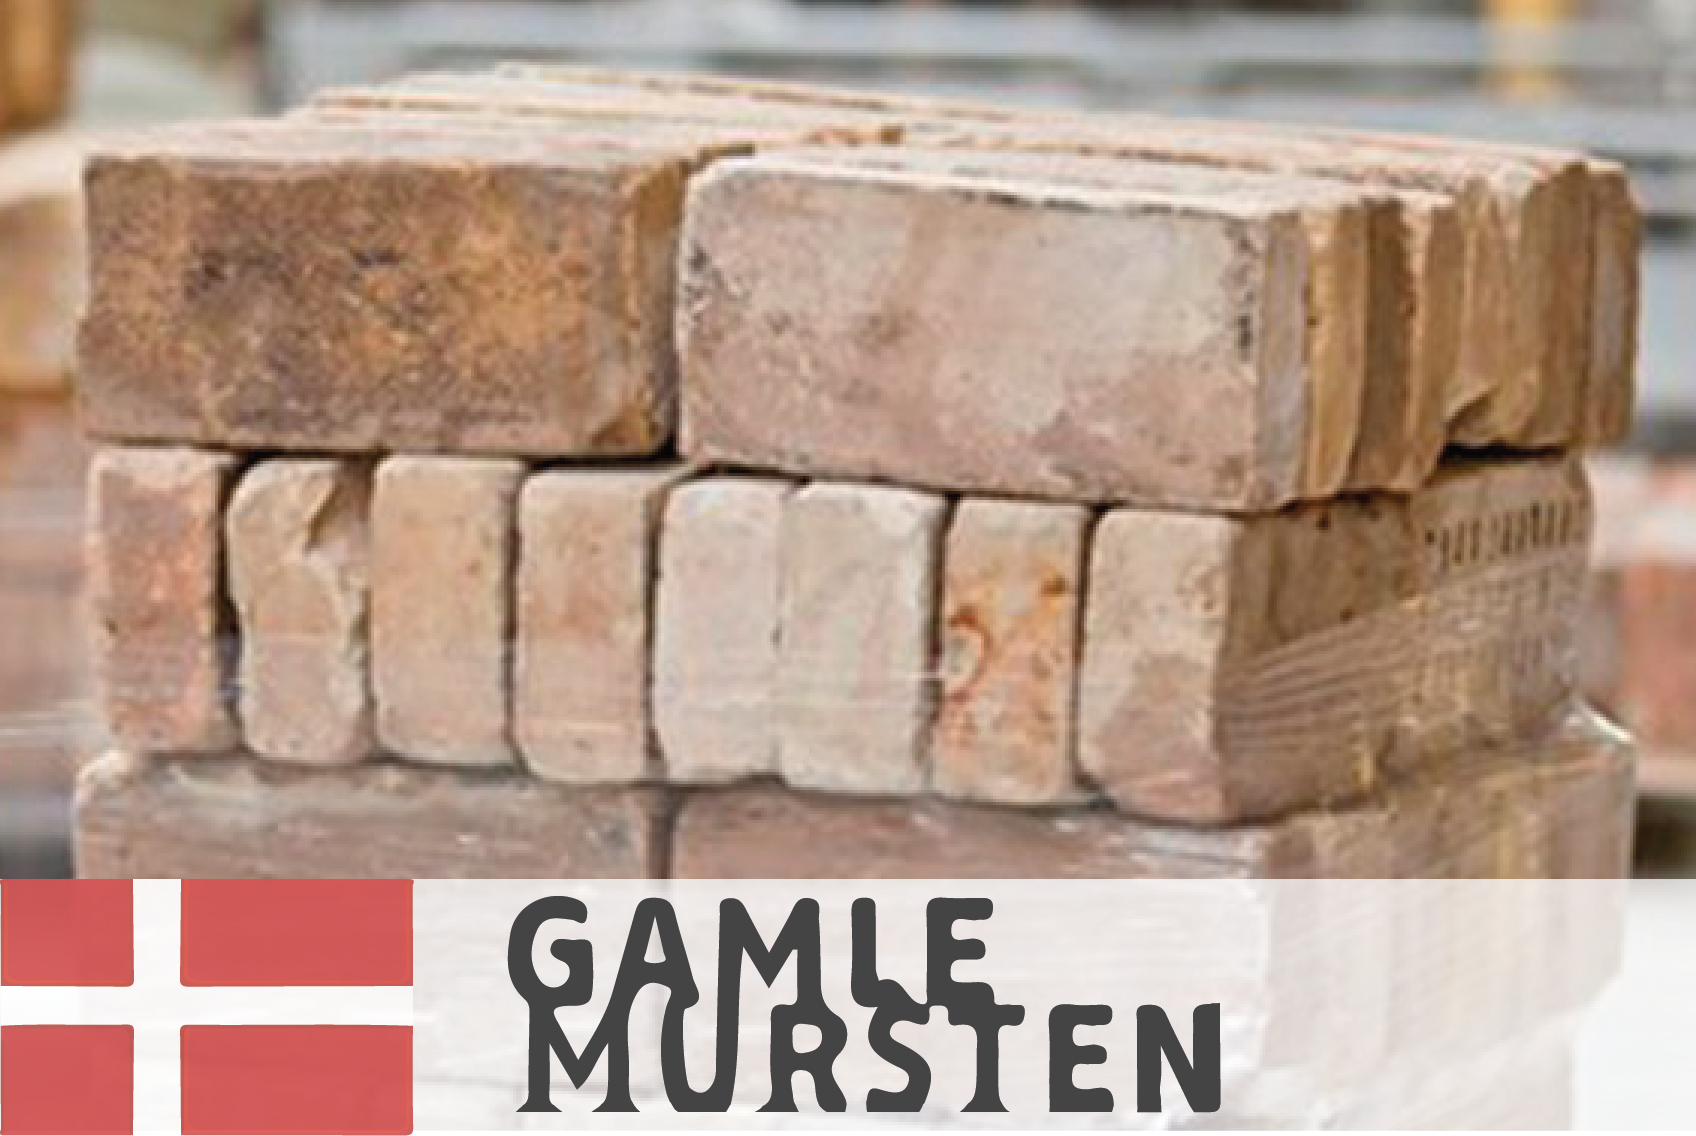 #1 Gamle Mursten - Collecting, cleaning and re-selling used bricks - CIRCit Nord